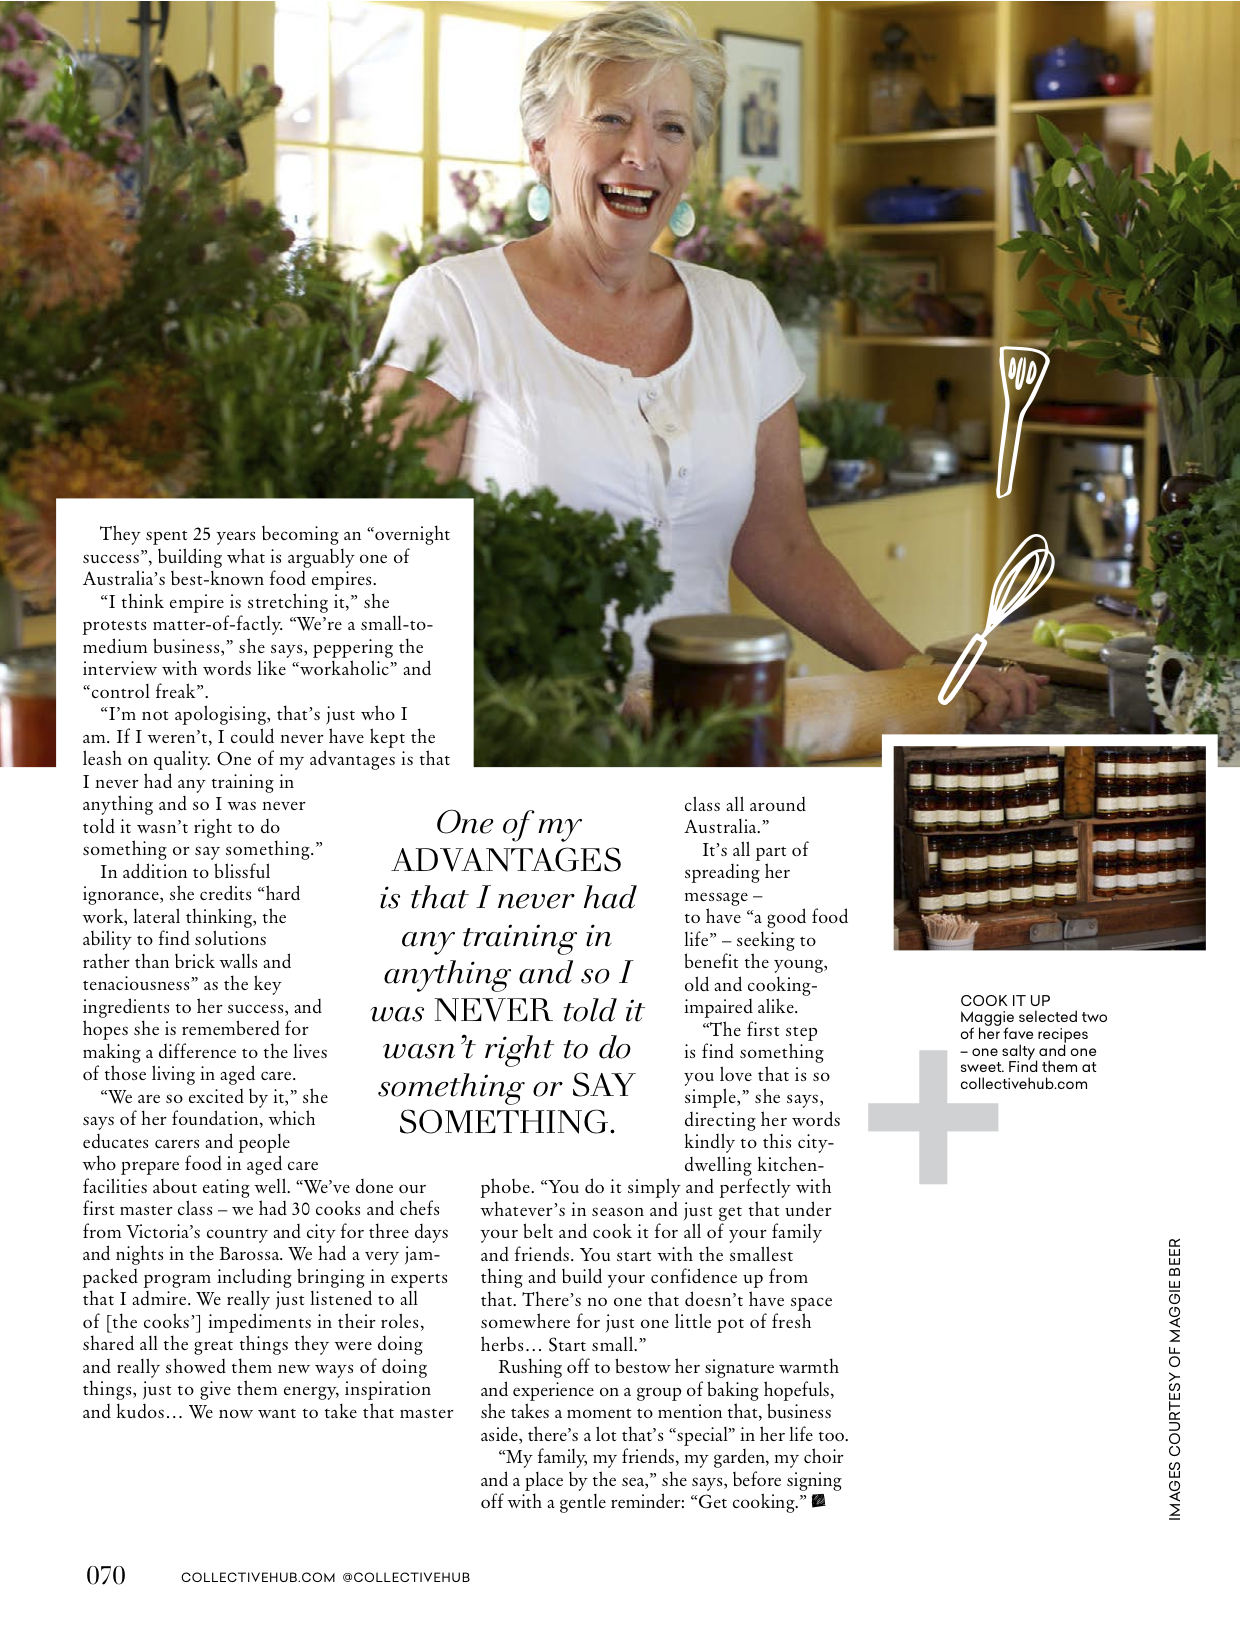 TheCollective_Issue27_MaggieBeer1